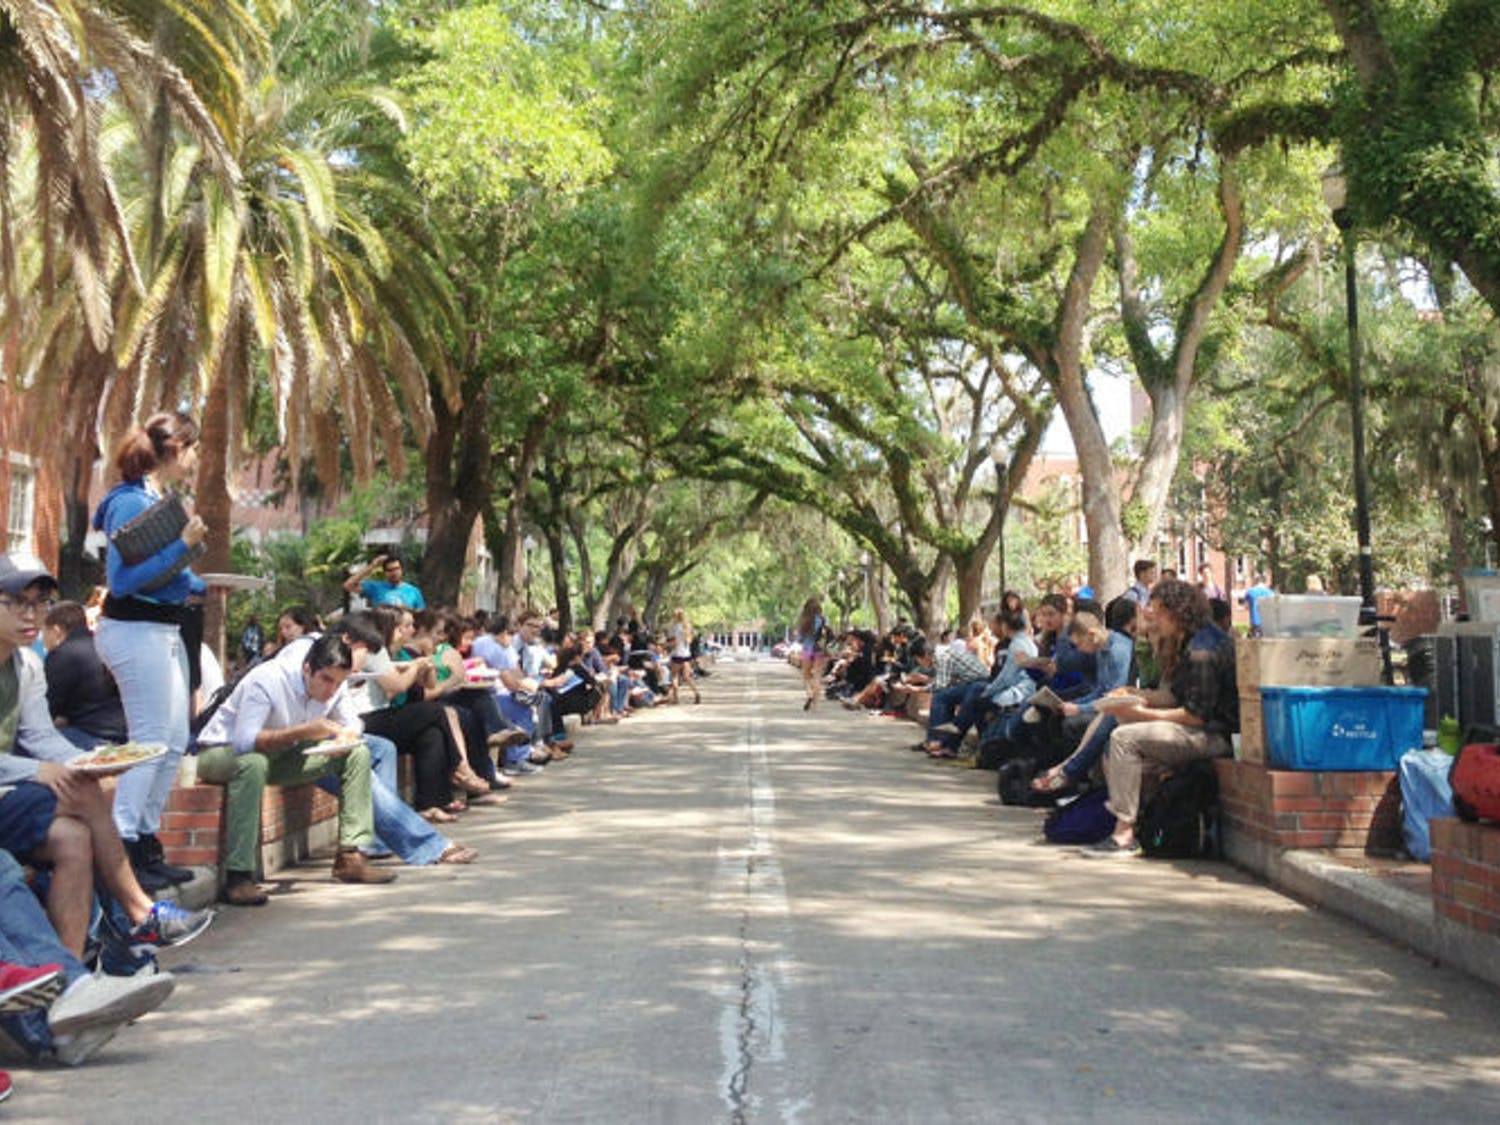 UF students eat Krishna Lunch near the Plaza of the Americas. The warm weather and Wednesday menu offering of spaghetti brought a large turnout.